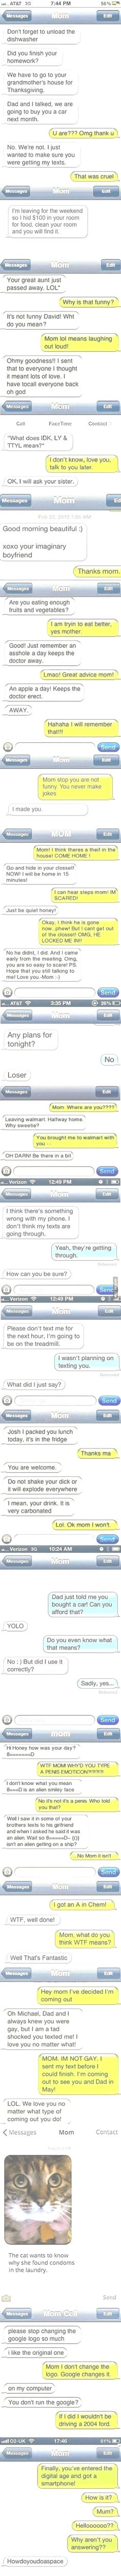 Check some of the funniest text messages on the web. We compiled 40 hilarious texts sent from parents and neighbors. Don't miss all the cringy texts and funny conversations. Sit down and relax with the funniest text messages on Pinterest. #funnytexts #humor #textmessages Funny Text Messages Fails, Text Message Fails, Text Memes, Hilarious Texts, Funny Jokes, Bad Neighbors, Funny Text Conversations, Wrong Person, Bad Feeling